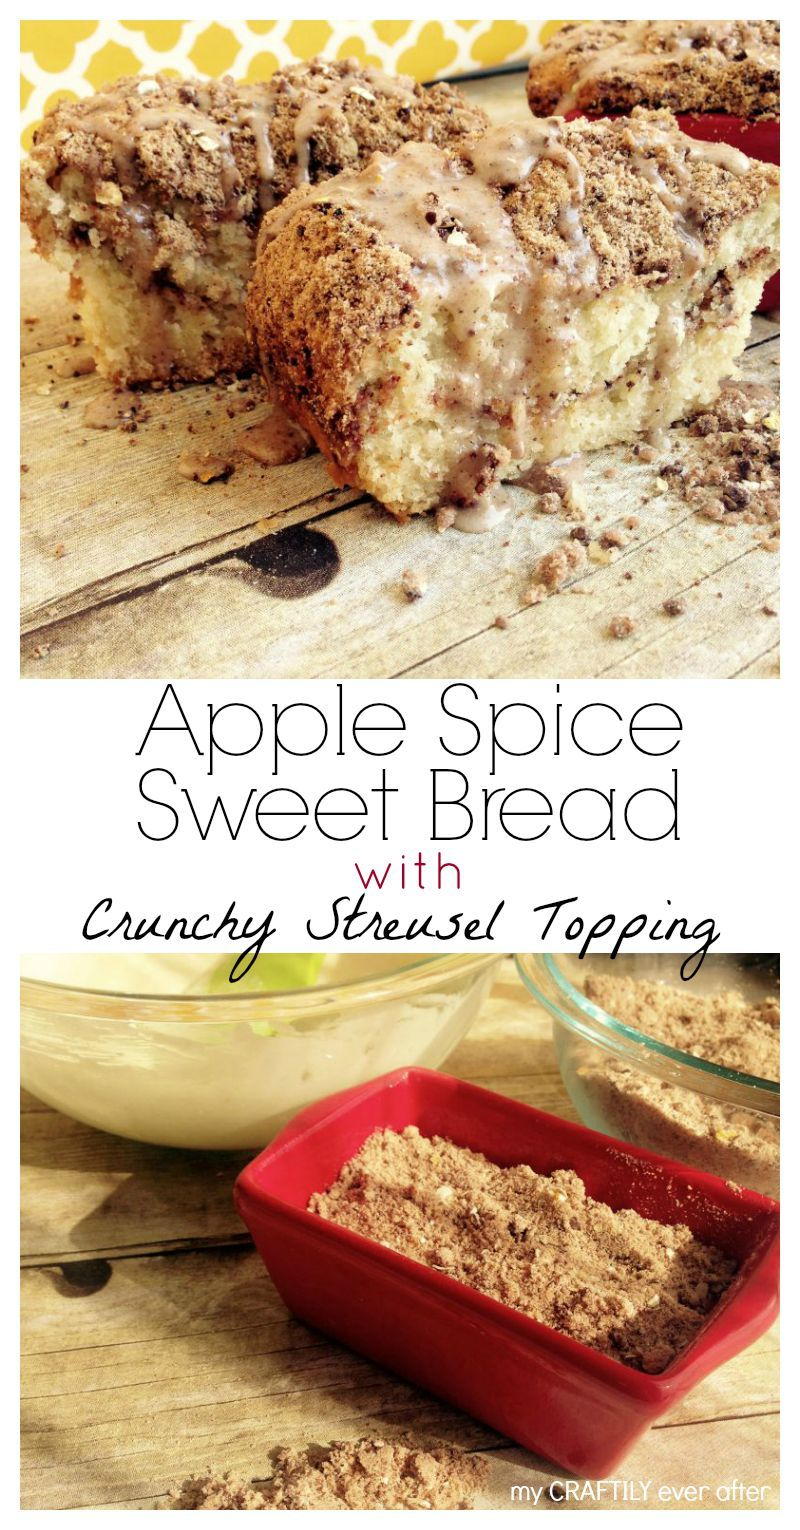 #Bakeinthefun with this Apple Spice Sweet Bread with Crunchy Streusel Topping [ad]